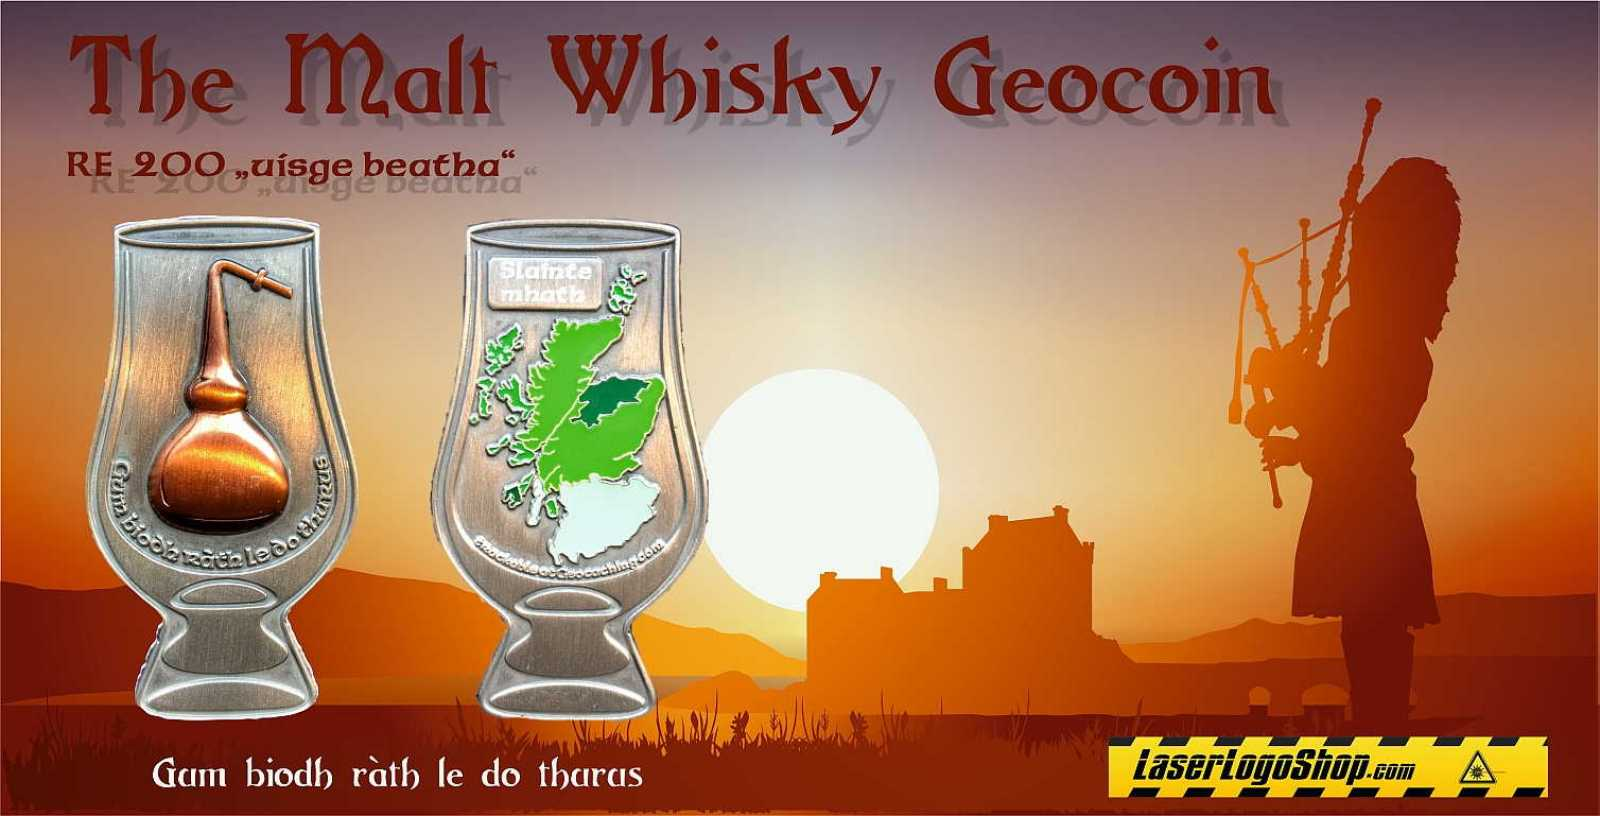 """The Single Malt Whisky Geocoin"" - Edition ""Slainte mhath"""